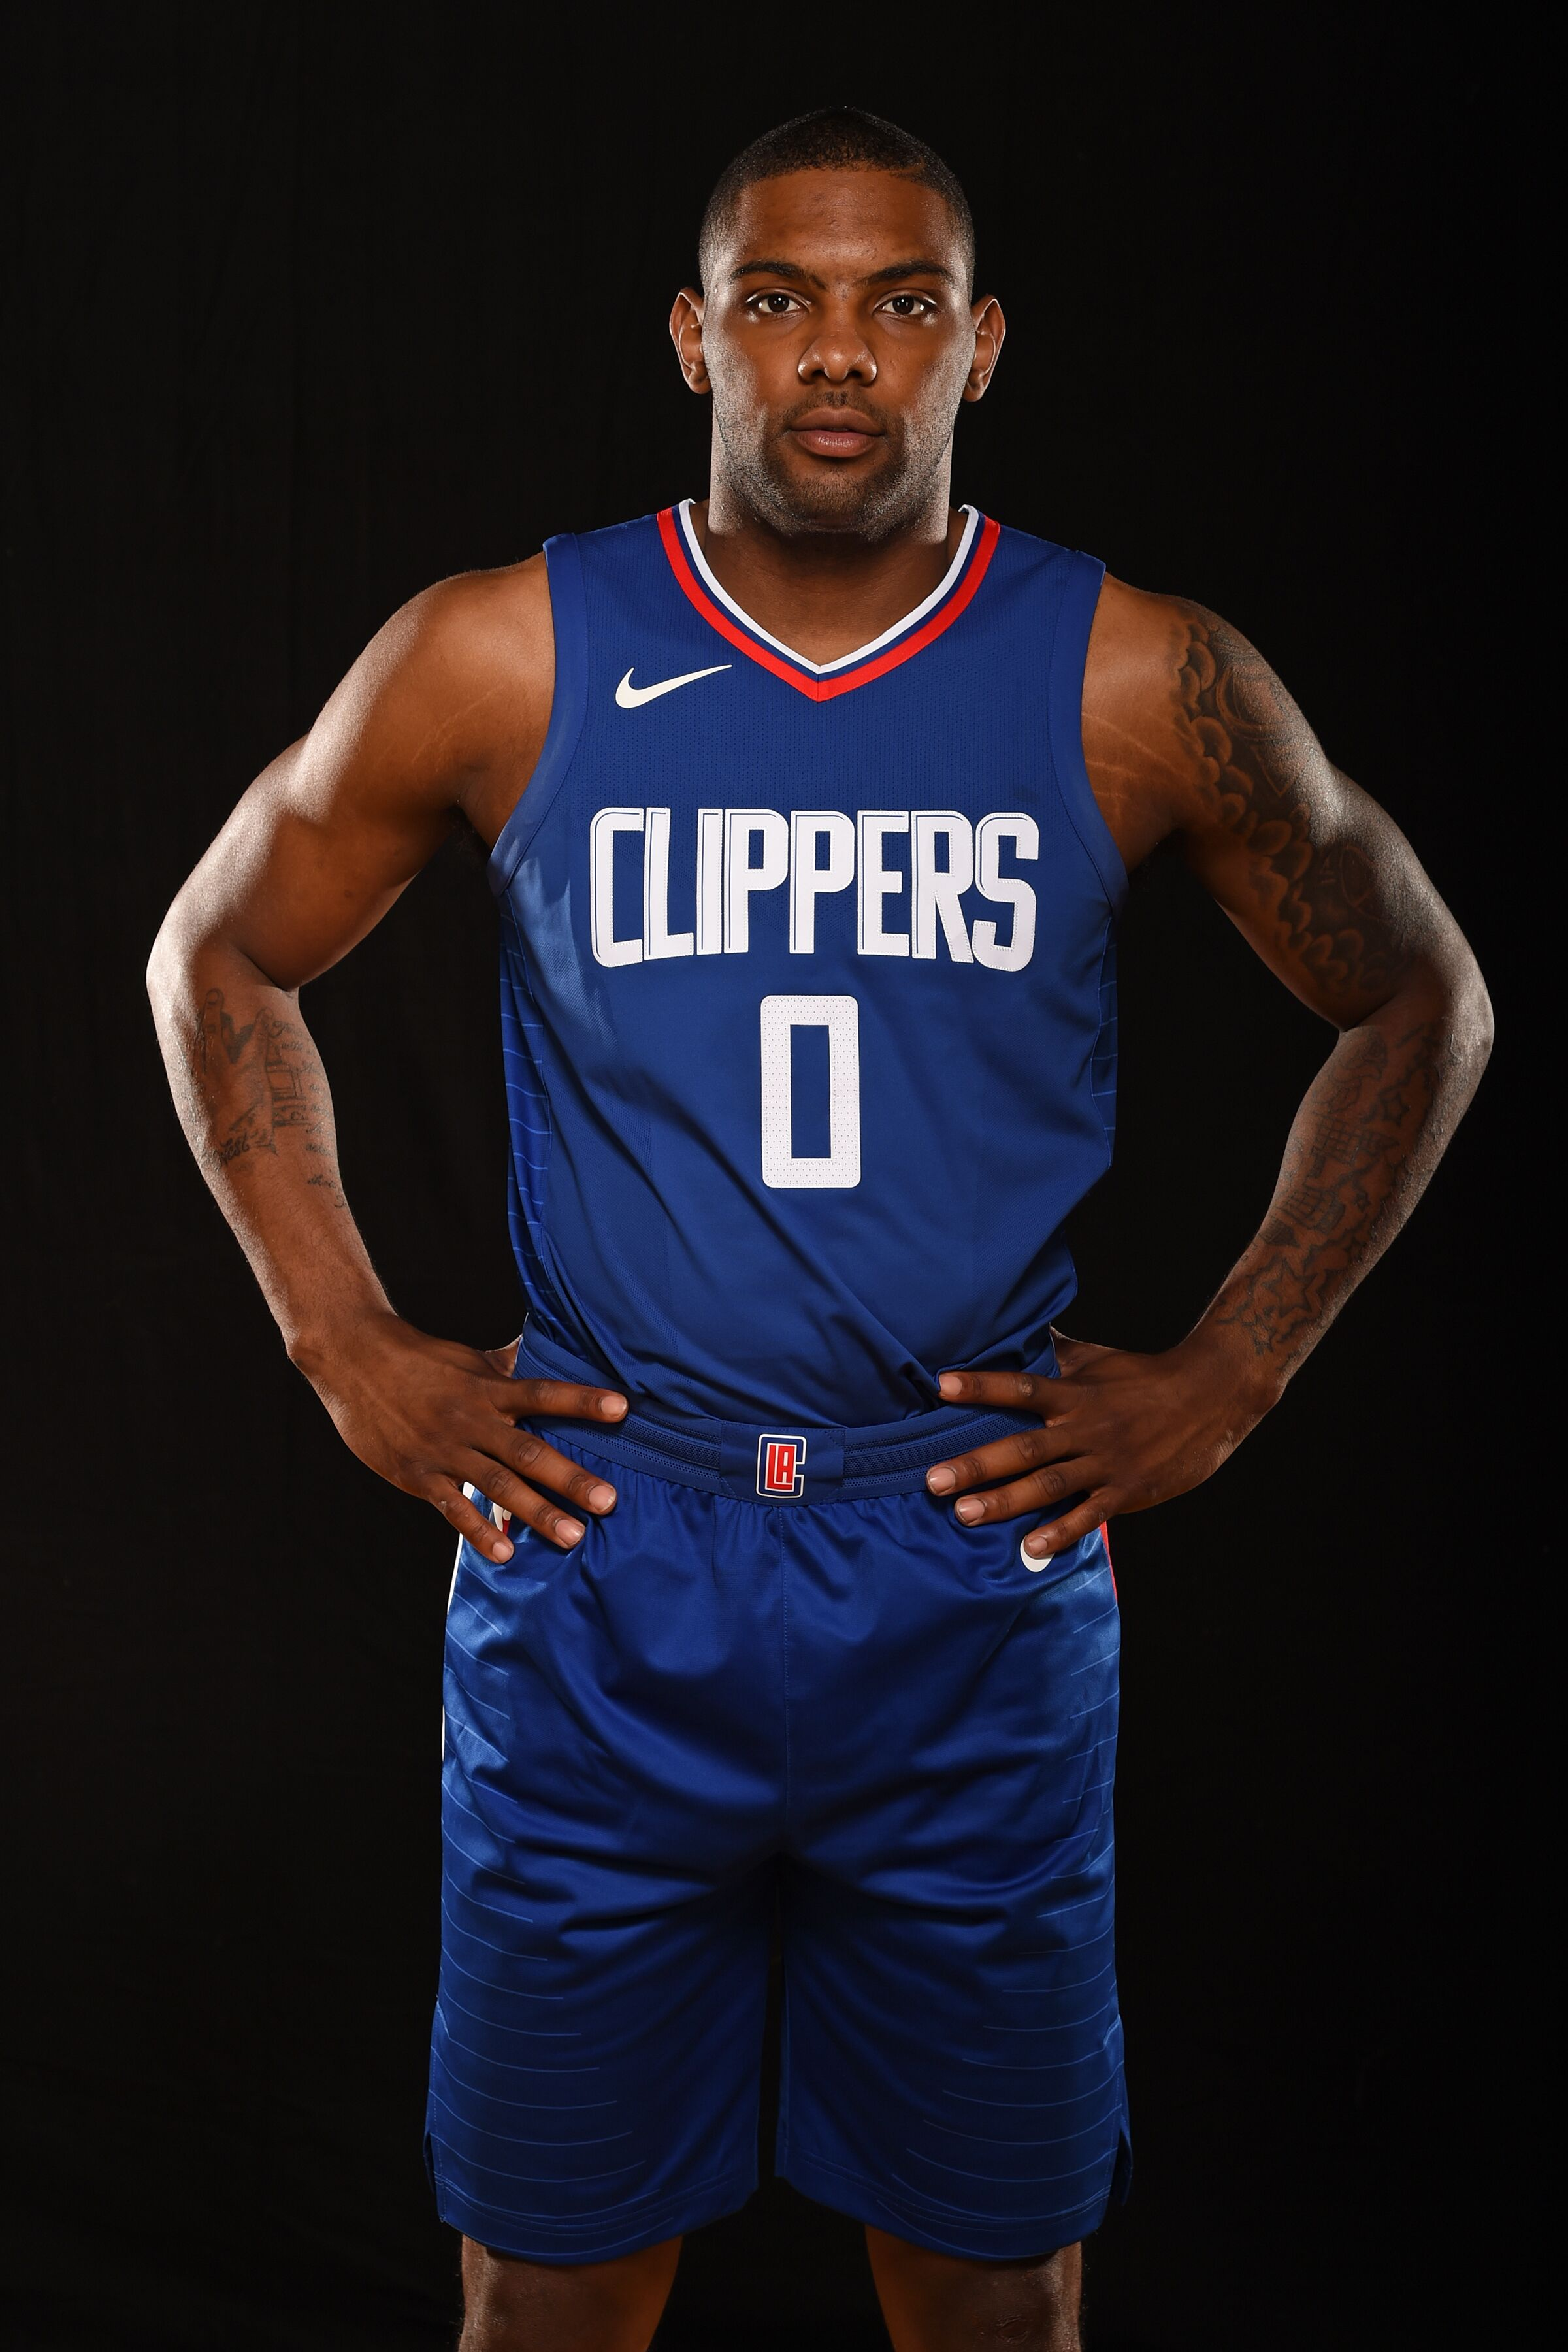 58b7d7006 LA Clippers  Ranking the Top 5 Jerseys in Team History